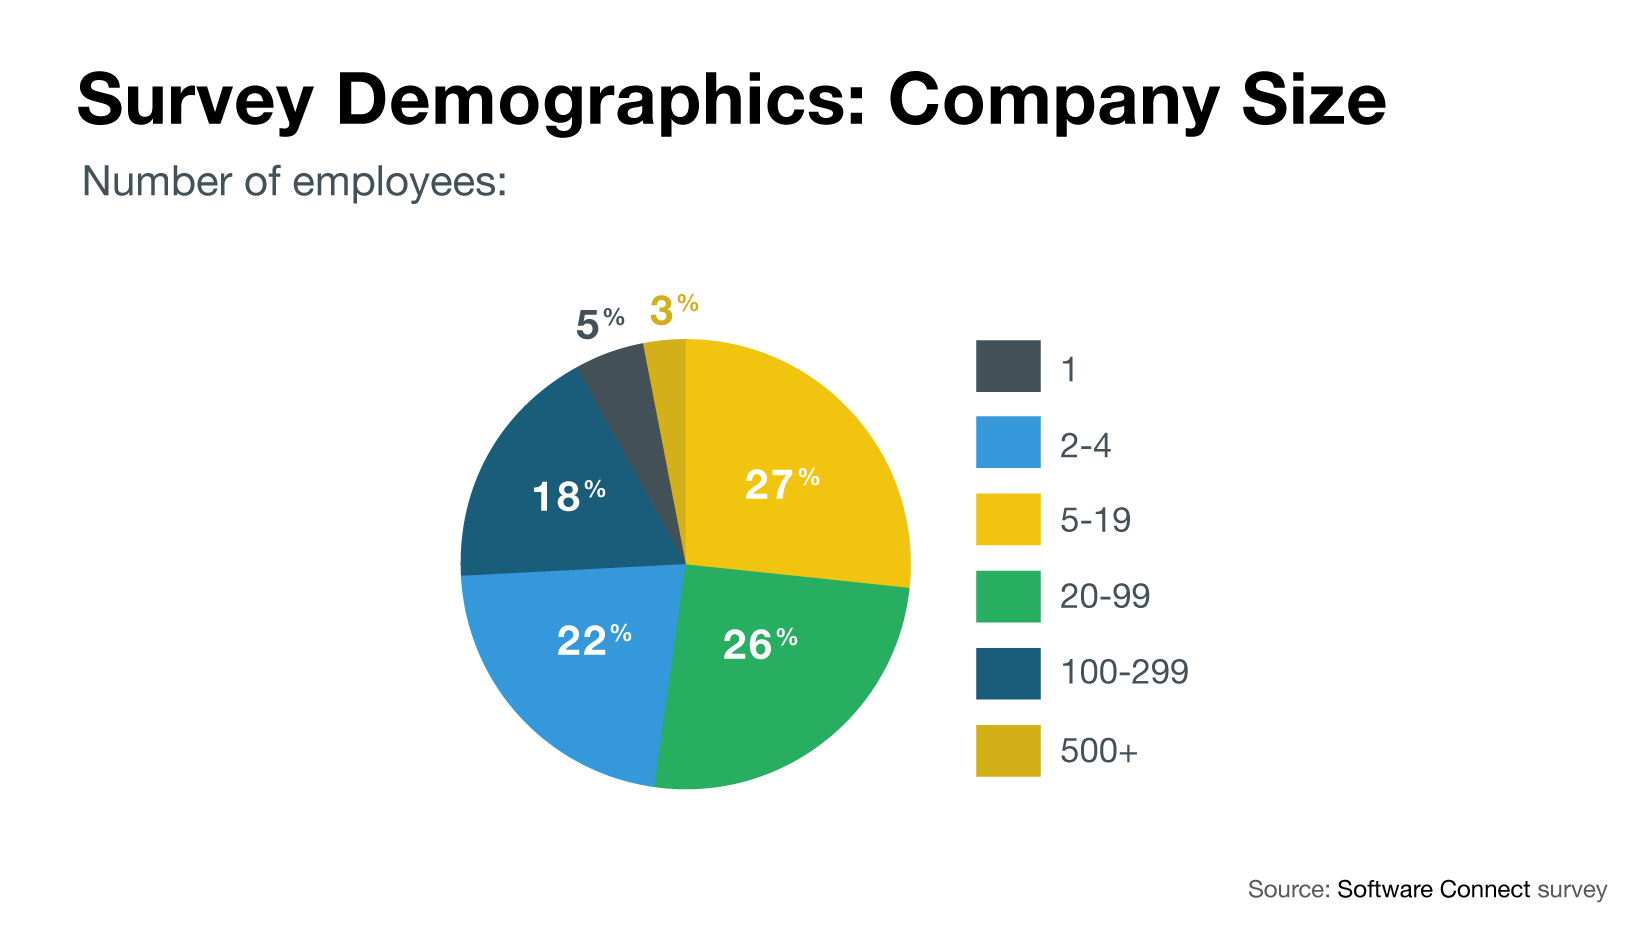 Company size demographics chart of construction companies surveyed